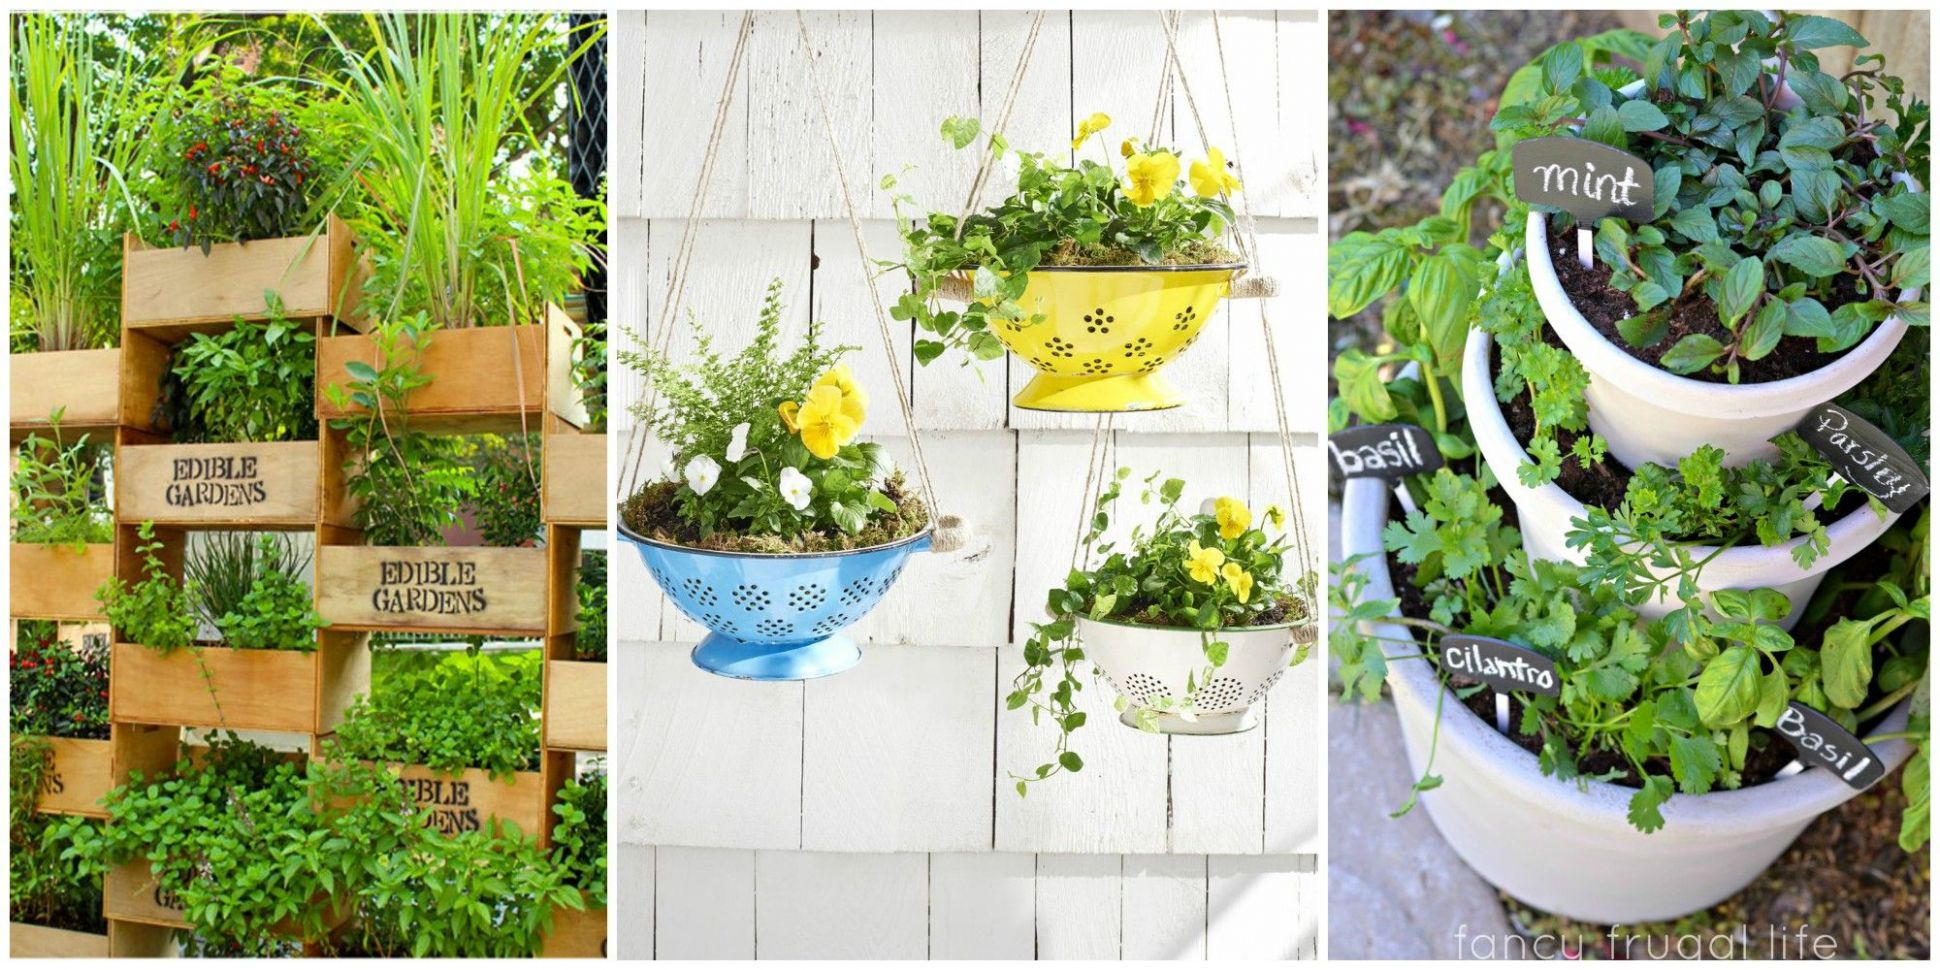 10 Small Backyard Ideas - Beautiful Landscaping Designs for Tiny Yards - garden ideas for small spaces